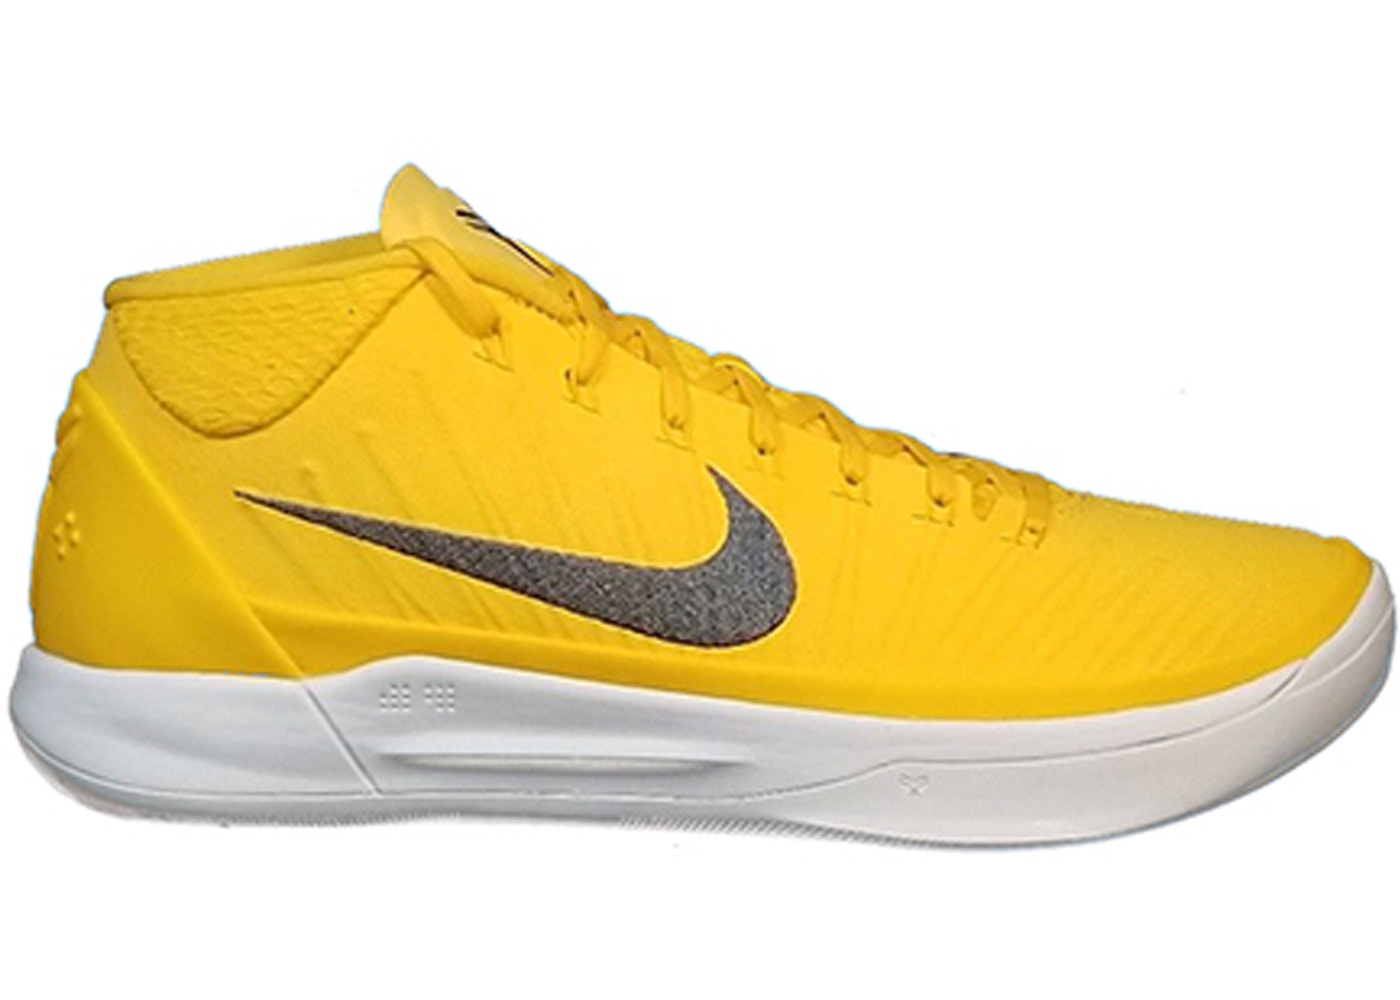 new concept 858db f70d9 Kobe AD Promo University Gold